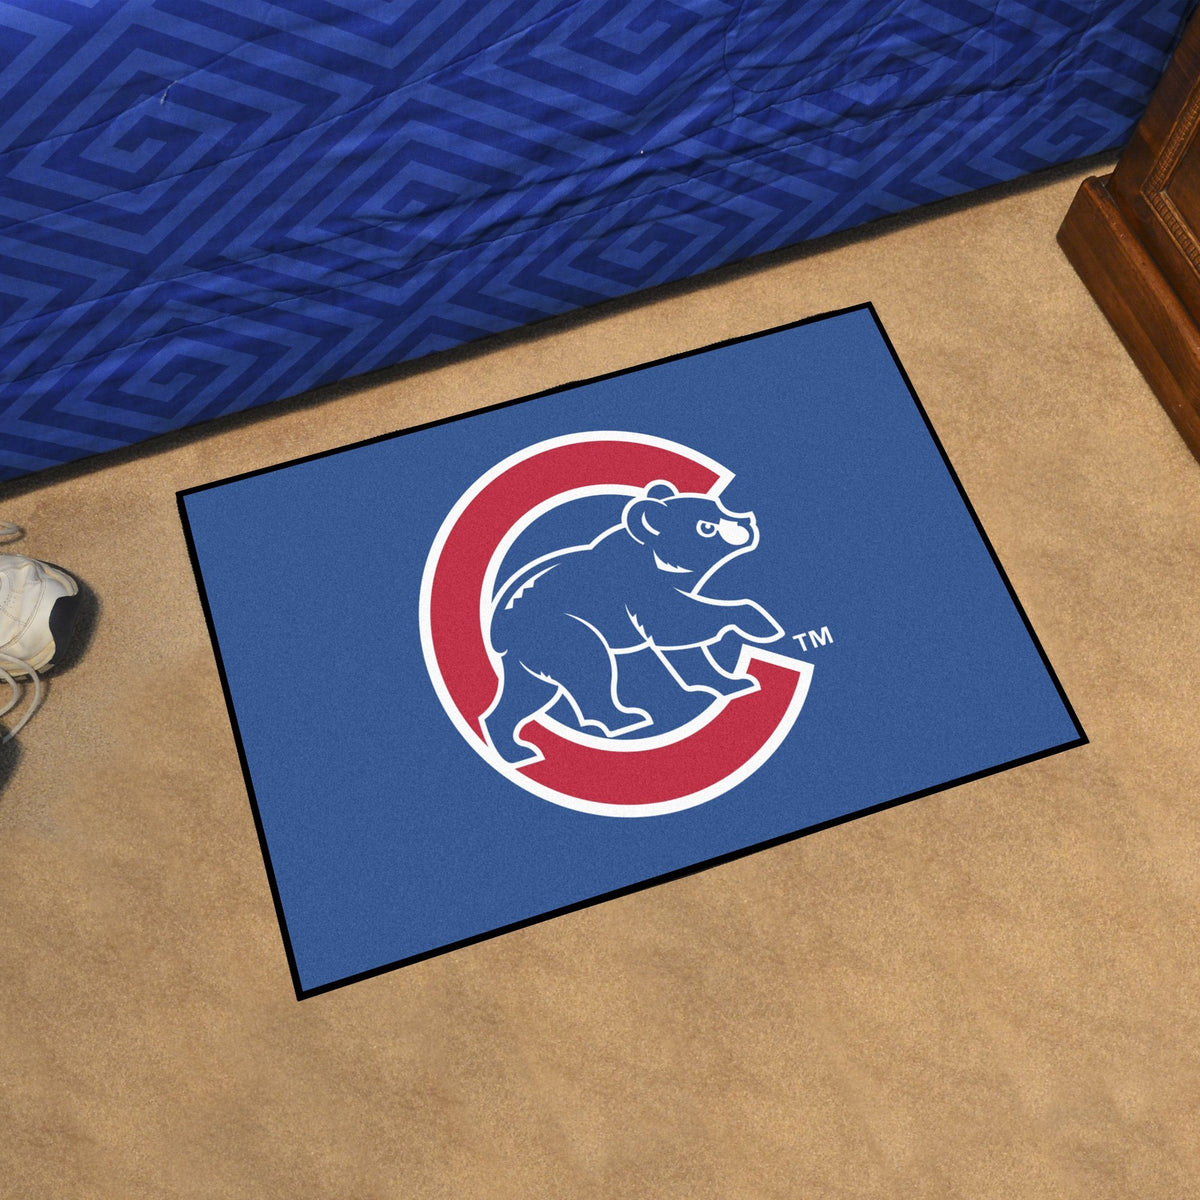 MLB - Starter Mat MLB Mats, Rectangular Mats, Starter Mat, MLB, Home Fan Mats Chicago Cubs 3